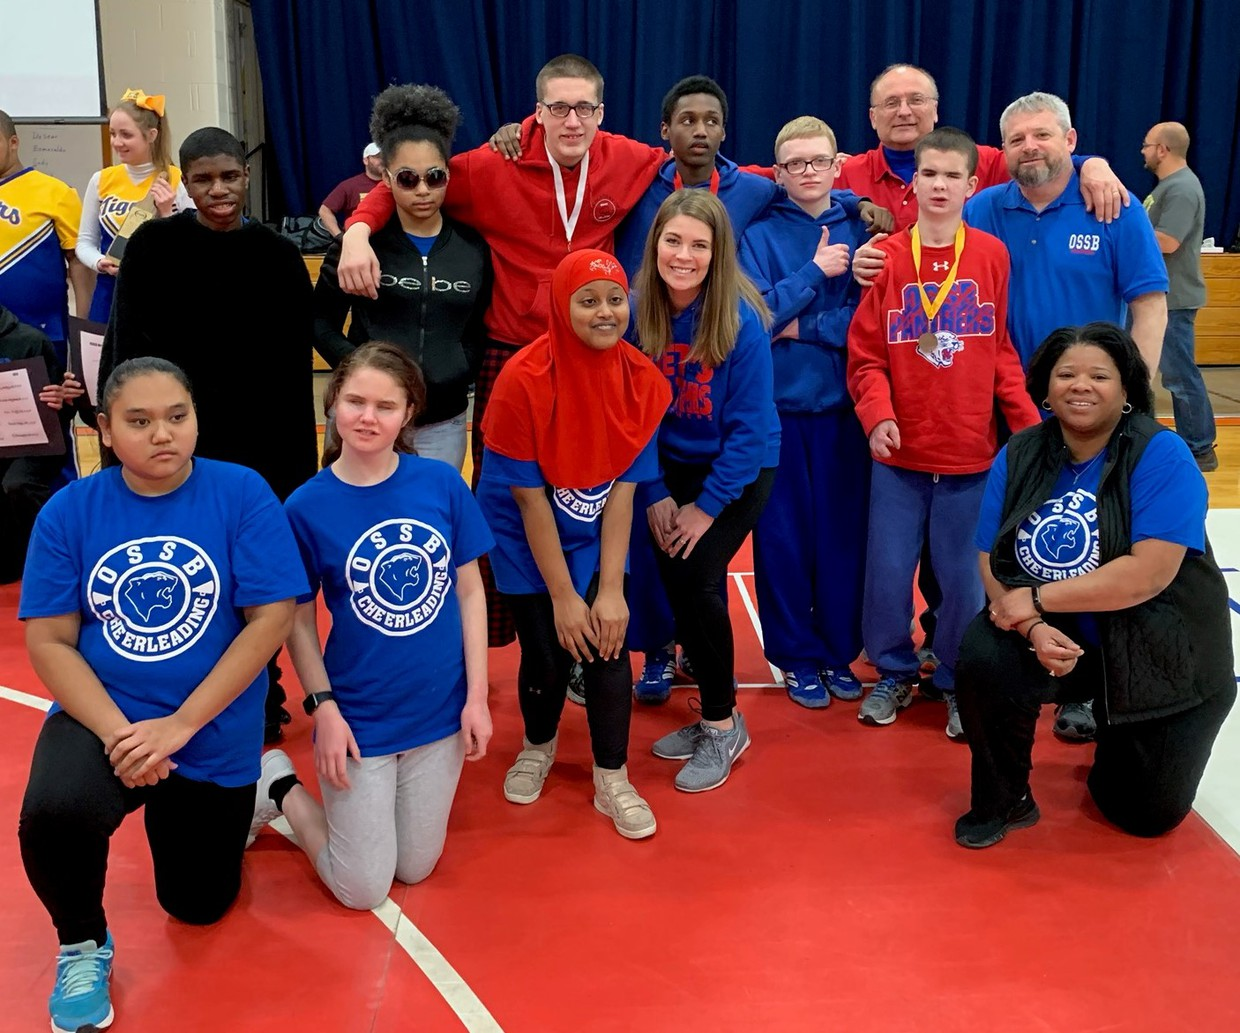 OSSB wrestlers, coaches and cheerleaders pose during a recent meet. Back row L to R are Elliott, Kurtacee, Carl, Marwan, Ian, Coach Heath, Evan, and Coach Mascarello. Shown in front are Lalita, Autum, Sumeya, Coach Traucht, and Coach Knight.